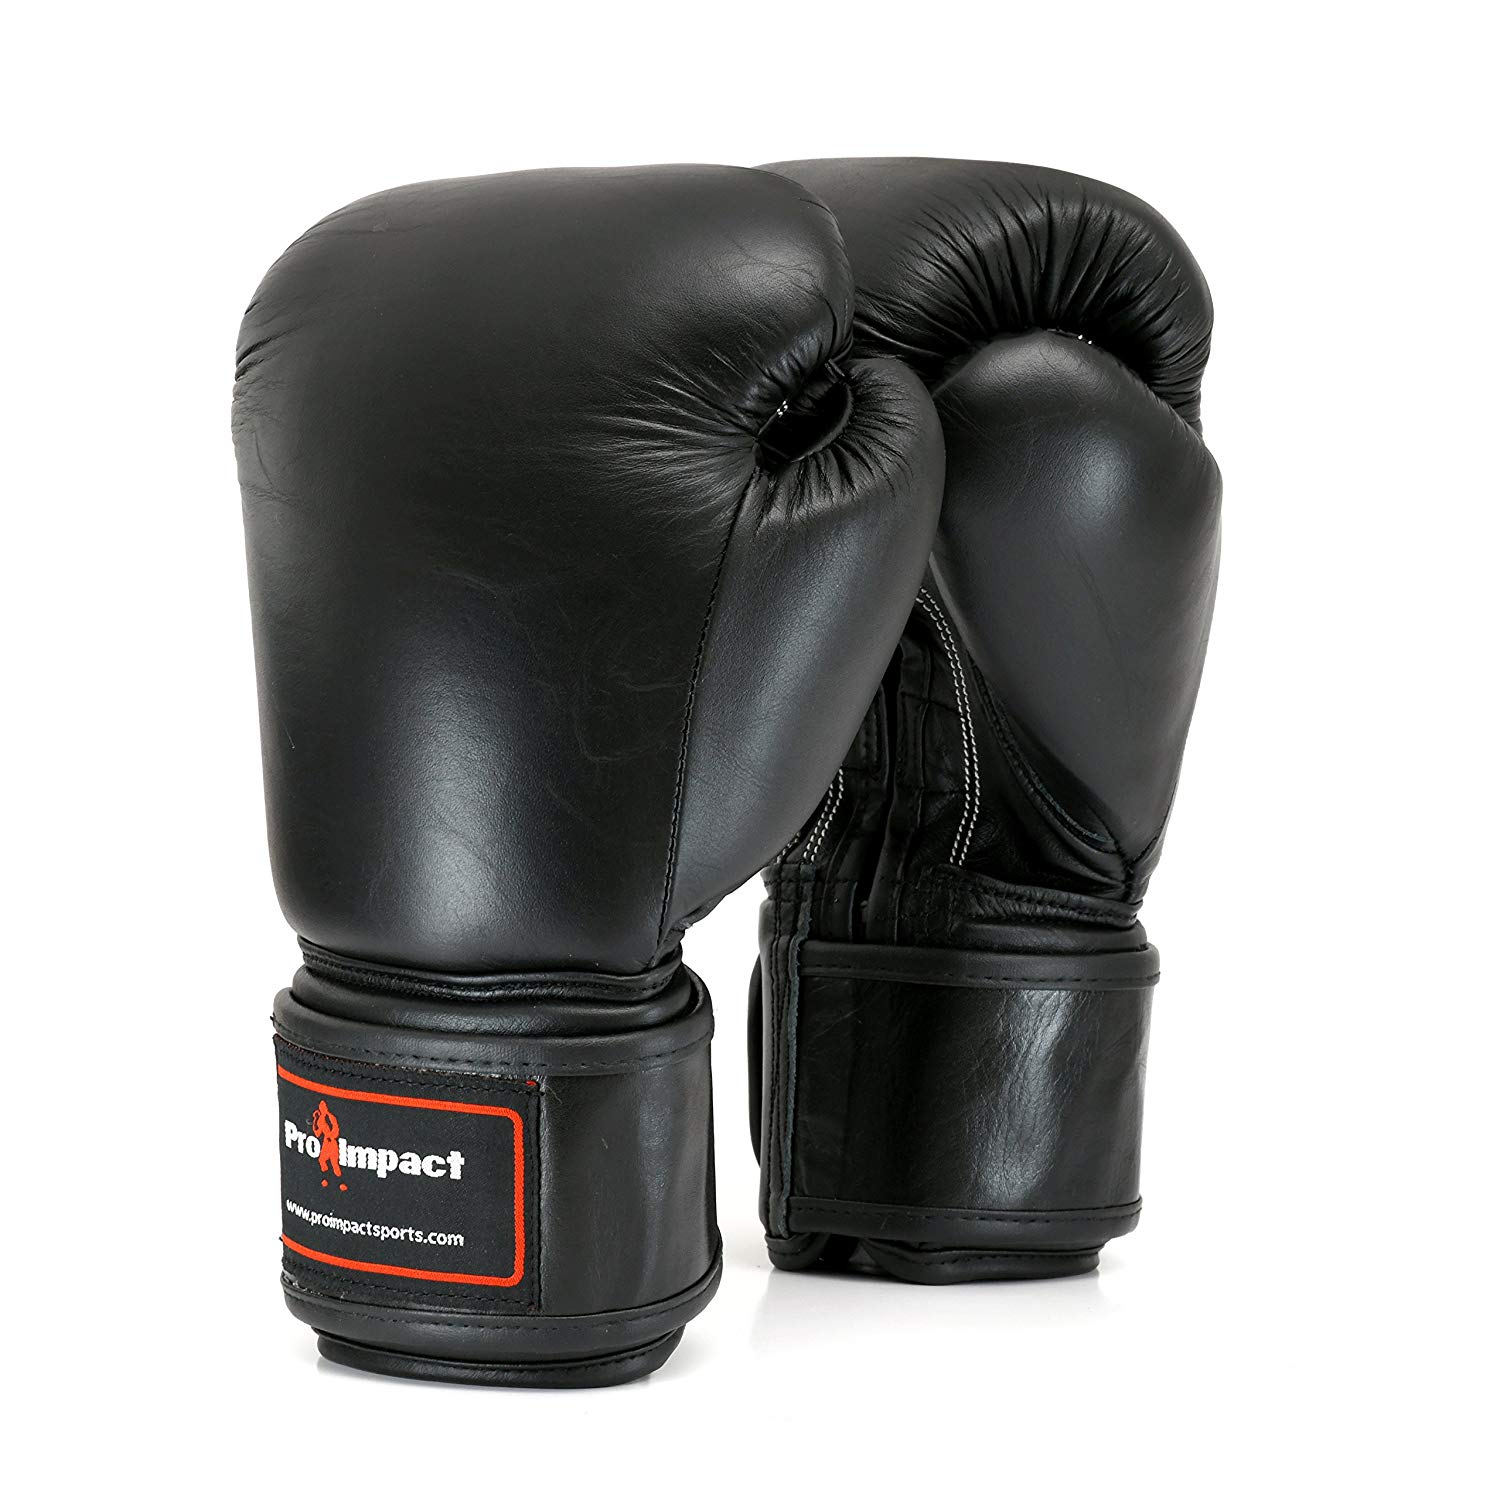 Pro Impact Genuine Black - Durable Leather Boxing Gloves